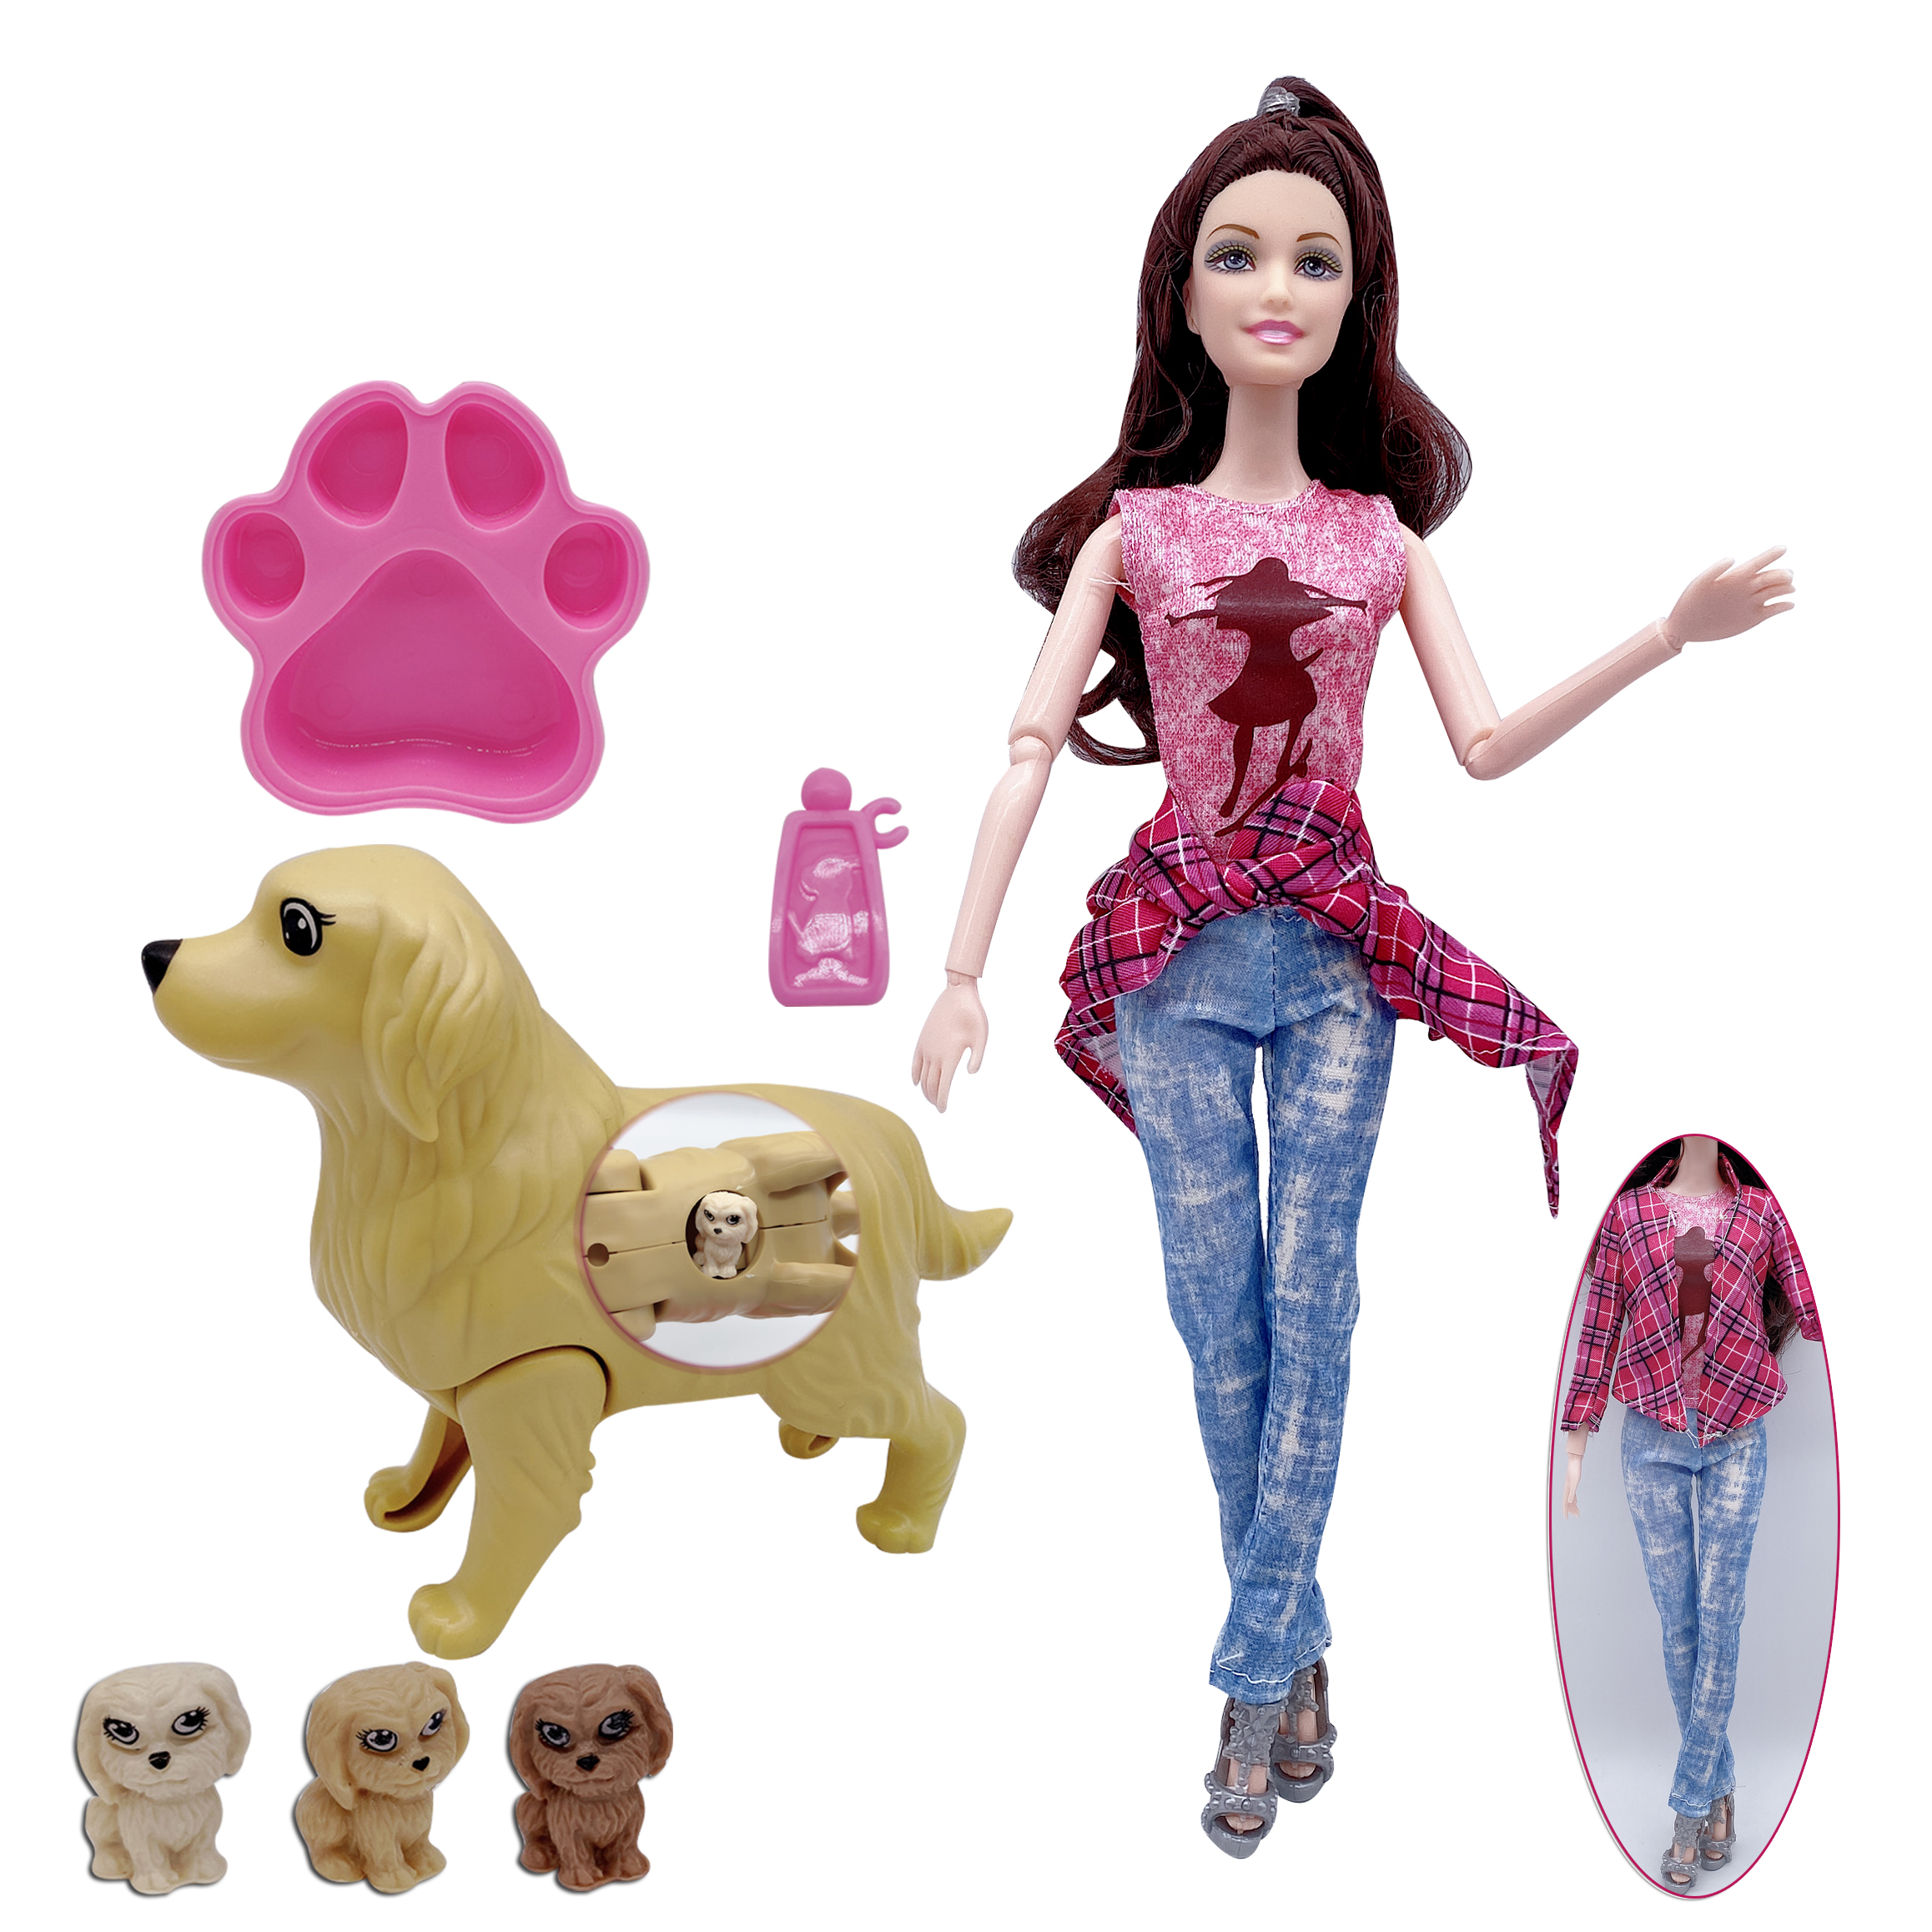 New fashion 11.5-inch 3-piece costume Barbies doll + dog accessories combination children's toys for pregnant and puppies